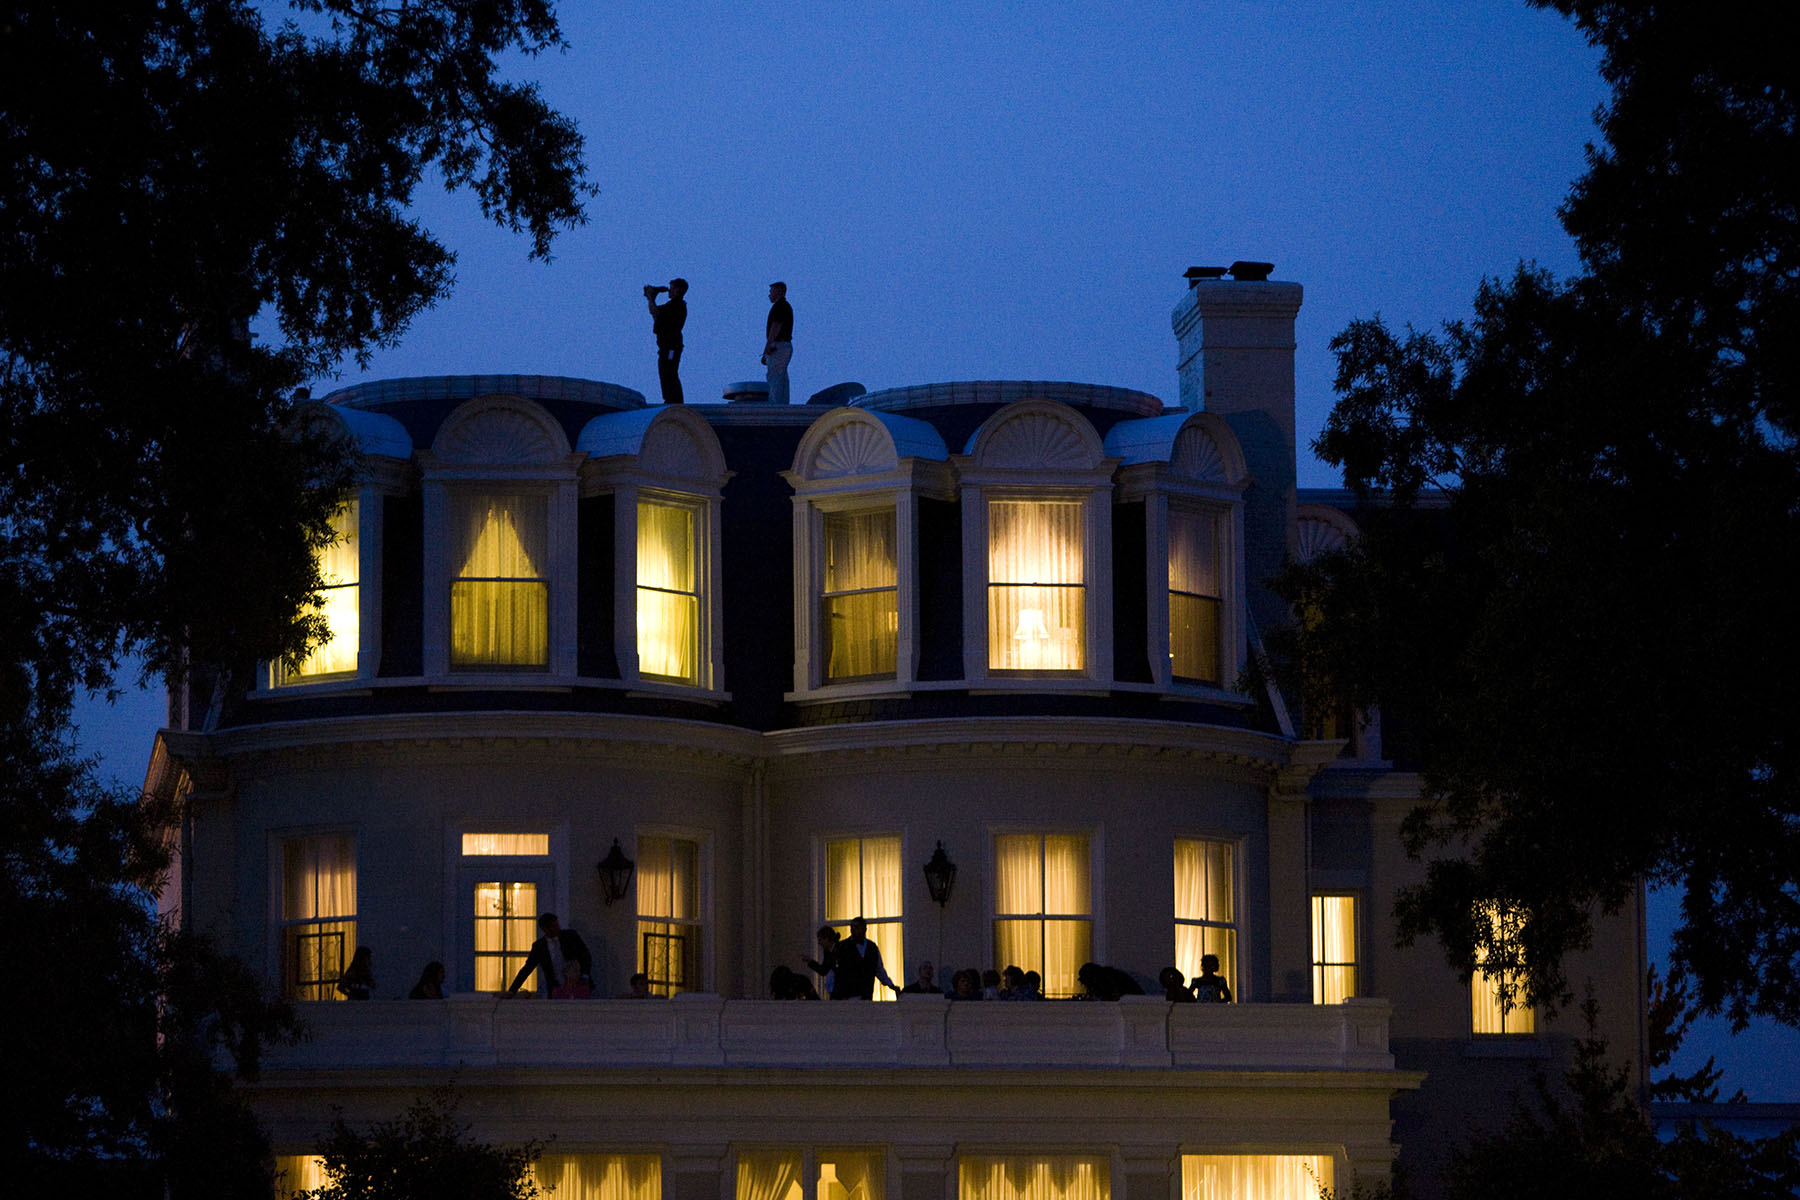 Secret Service watch as Marines perform during the evening parade attended by President Barack Obama at the Marine Corps Barracks in Washington.Photo by Brooks Kraft/Corbis